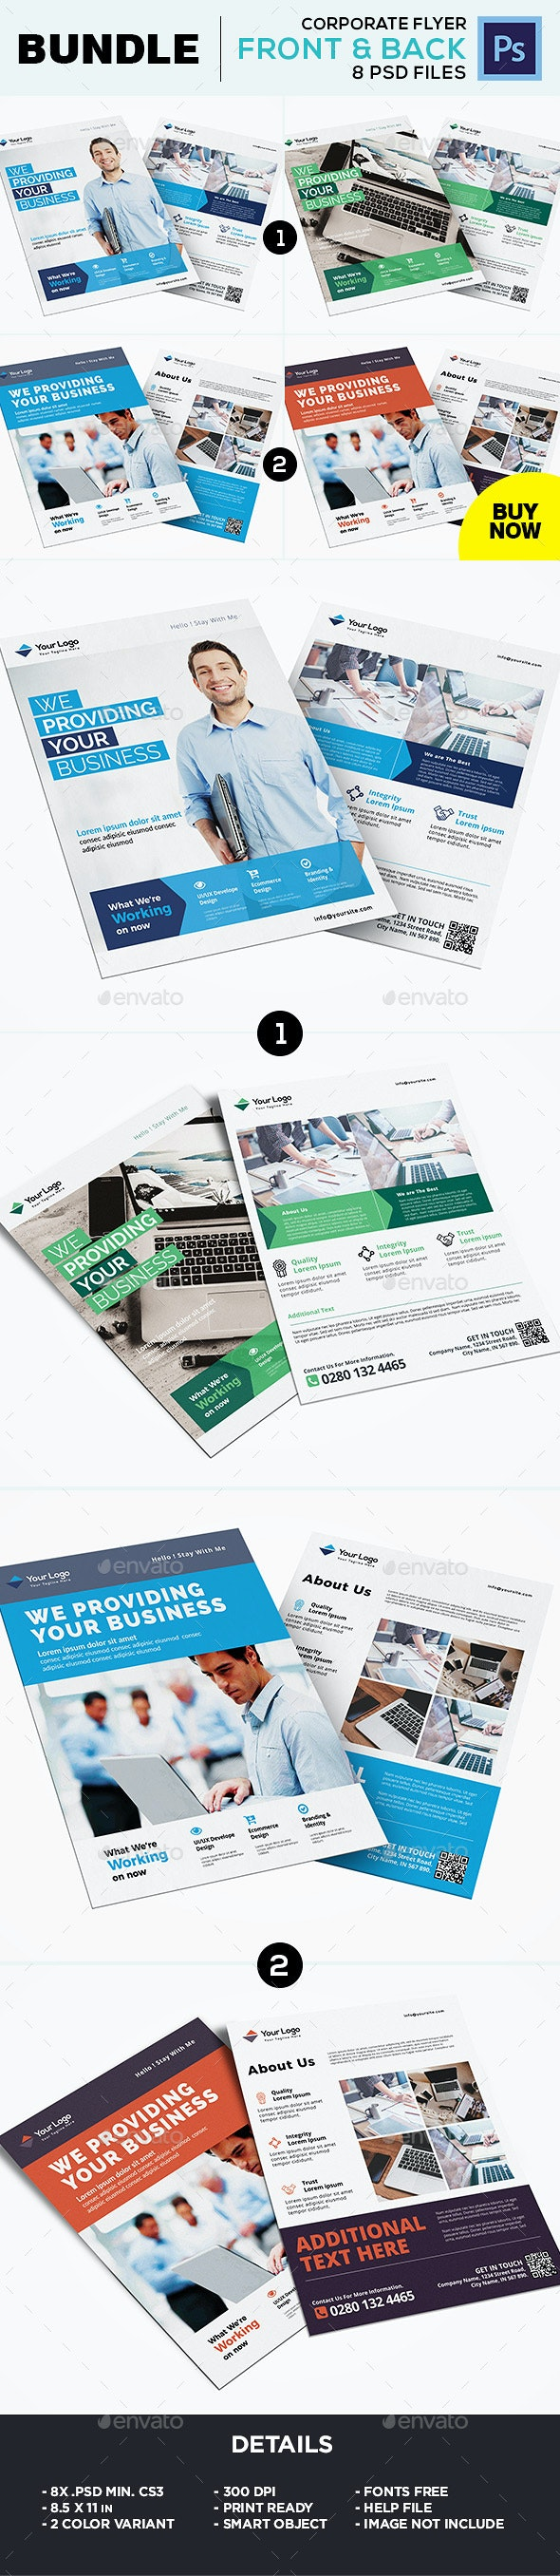 Corporate Flyer Template Bundle - Corporate Flyers